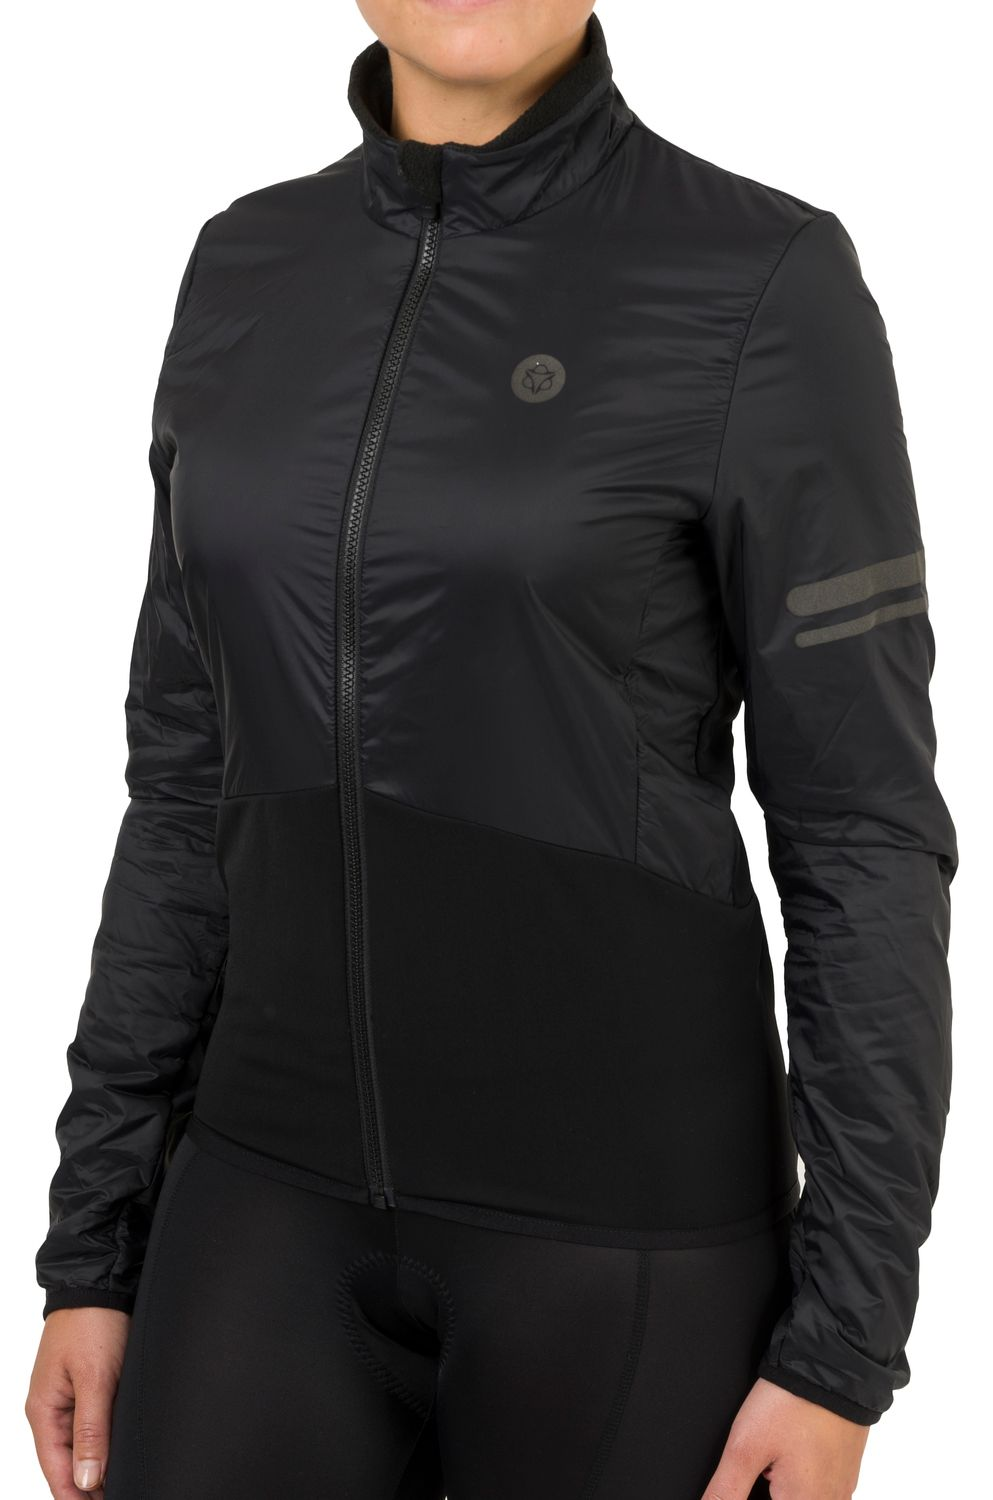 Thermo Jacket Essential Women fit example